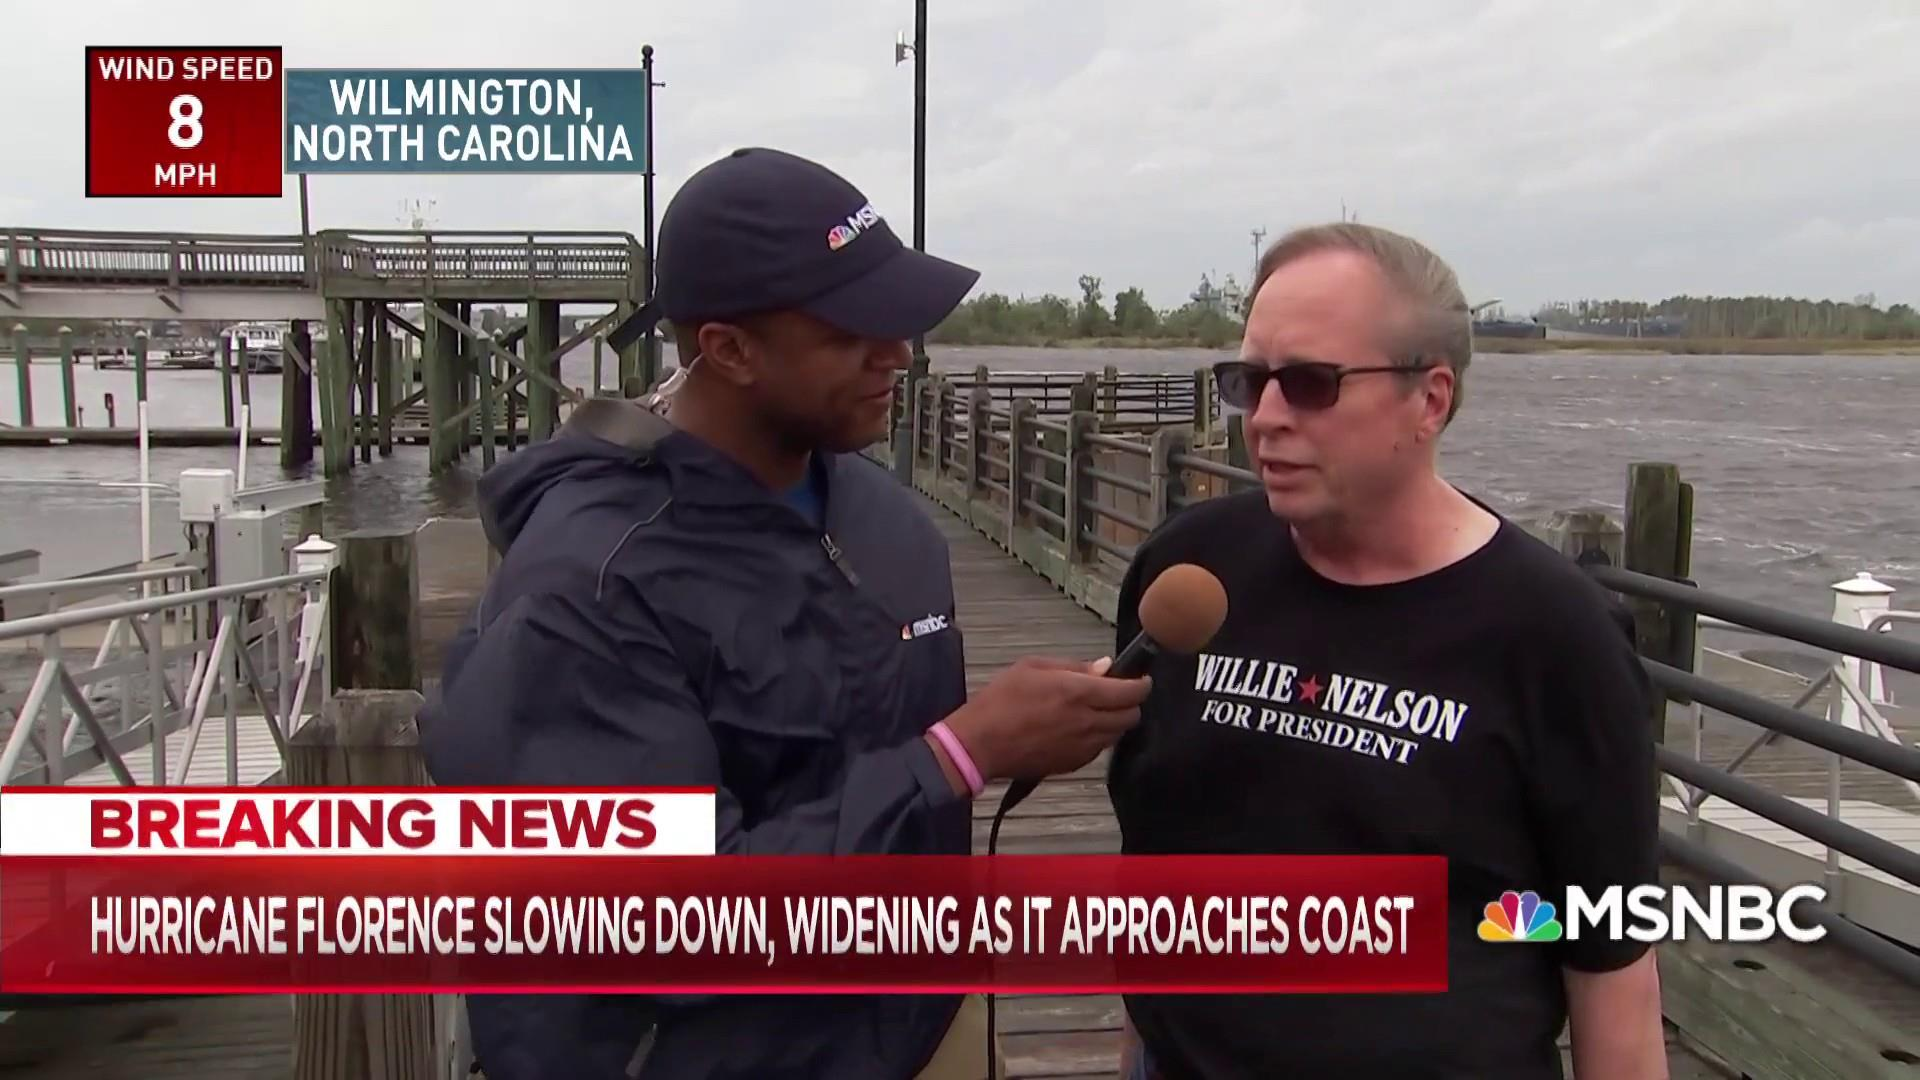 Small business owner plans to ride out Hurricane Florence